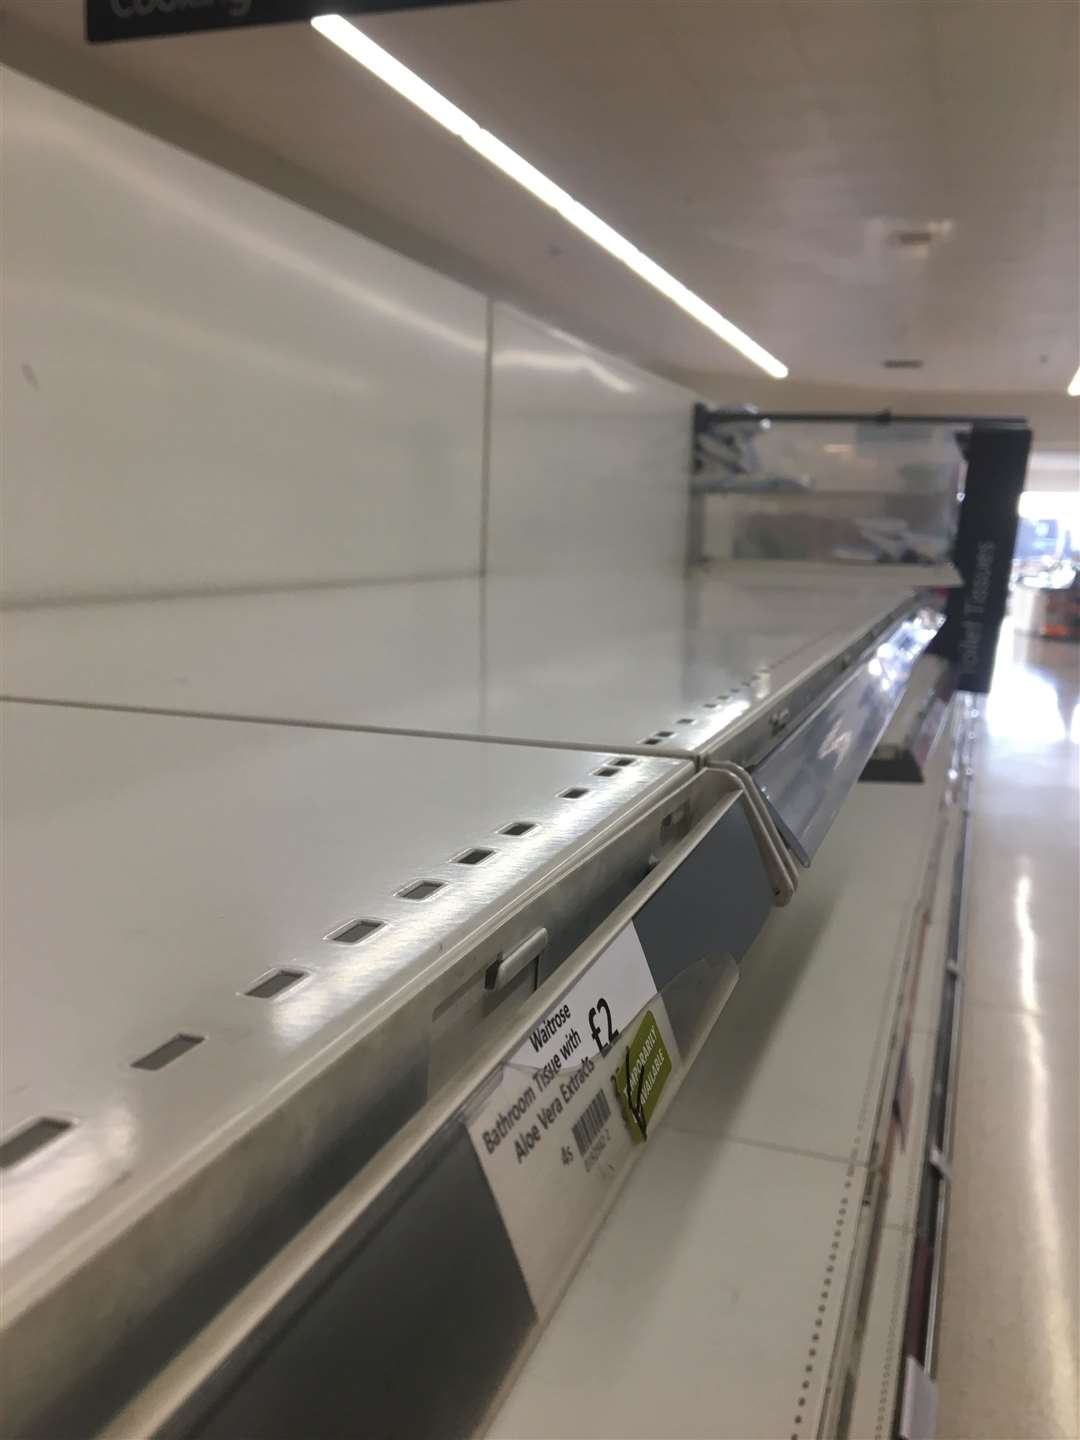 These were the shelves at Waitrose, Bury St Edmunds, at 7.40 this morning